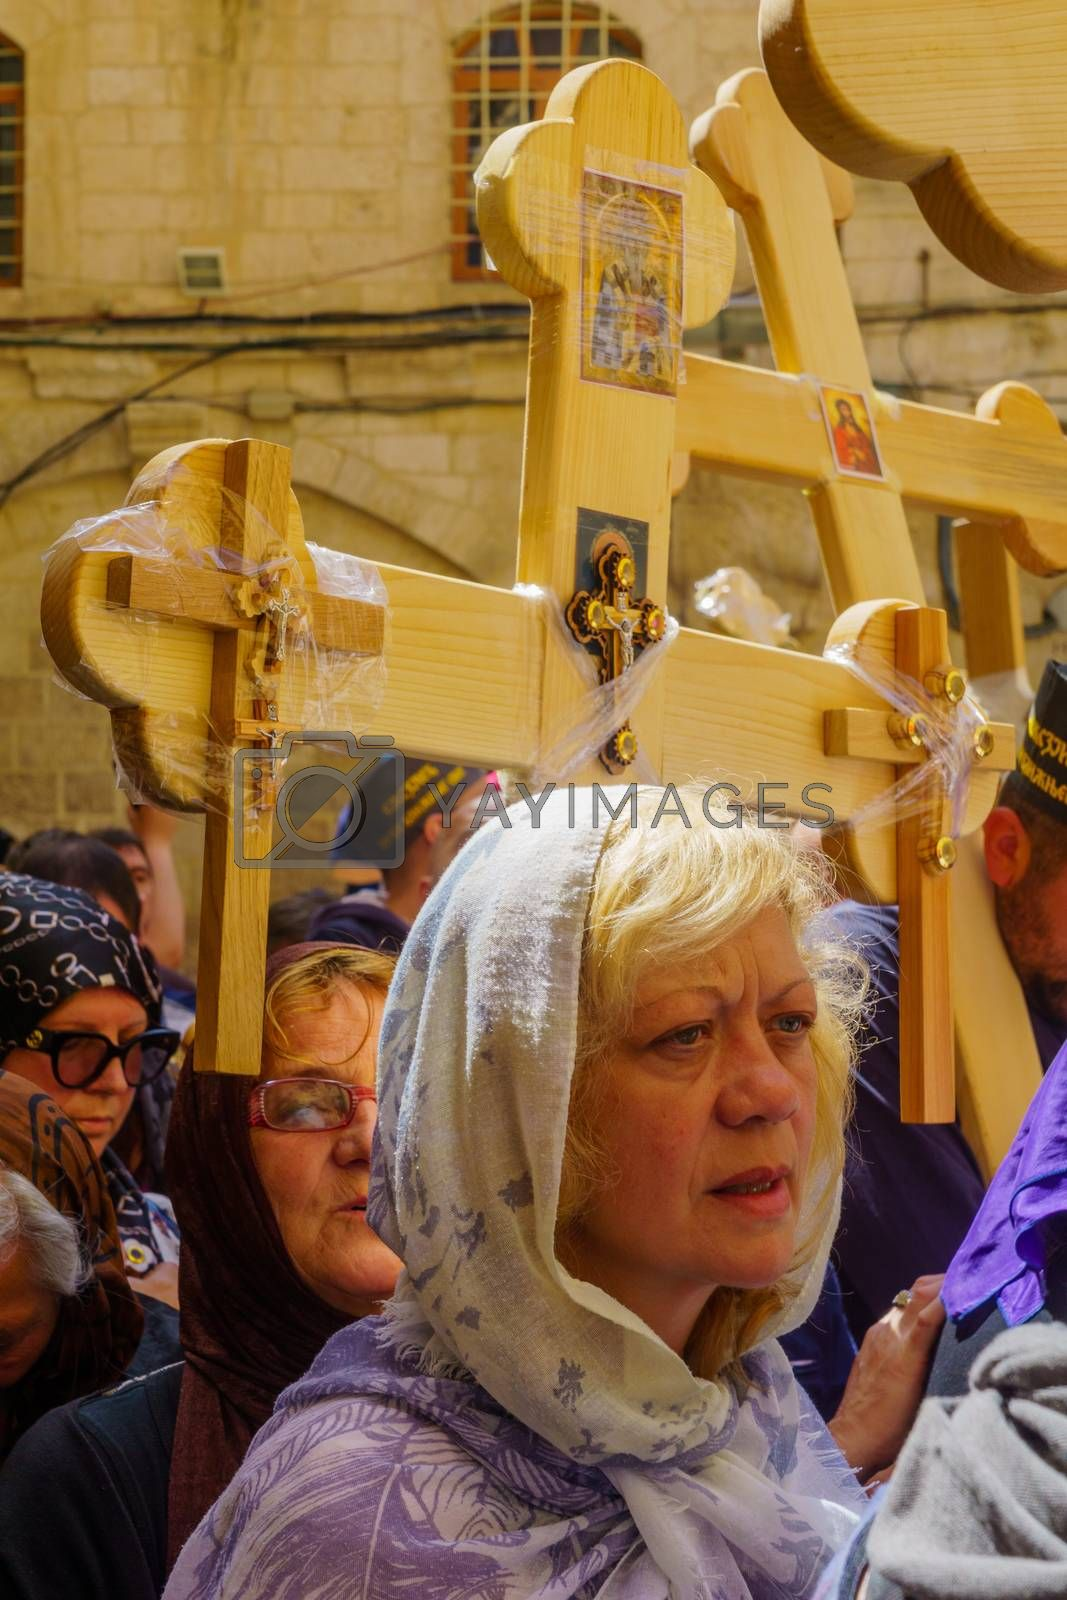 Jerusalem, Israel - April 6, 2018: Orthodox good Friday scene in the entry yard of the church of the holy sepulcher, with pilgrims. The old city of Jerusalem, Israel